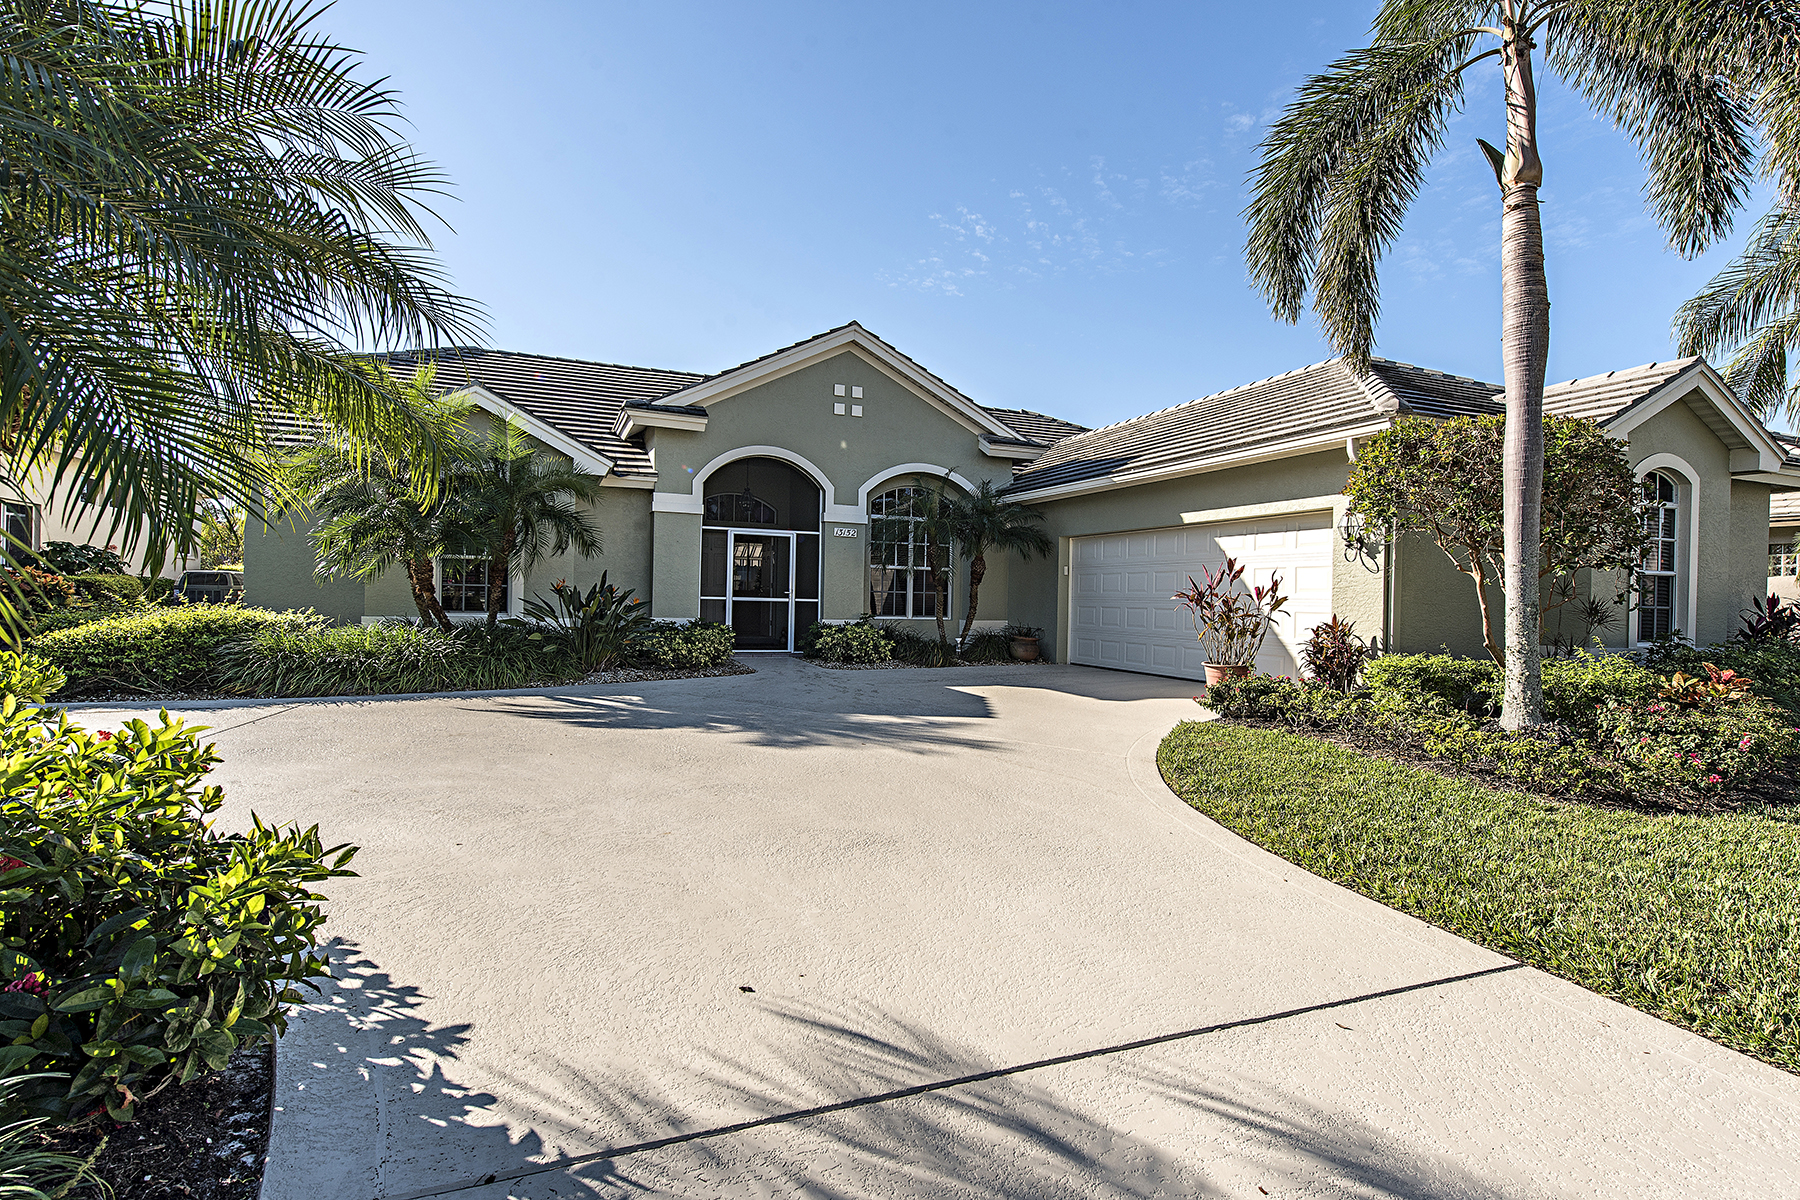 Single Family Home for Sale at WORTHINGTON 13152 Bridgeford Ave, Bonita Springs, Florida 34135 United States